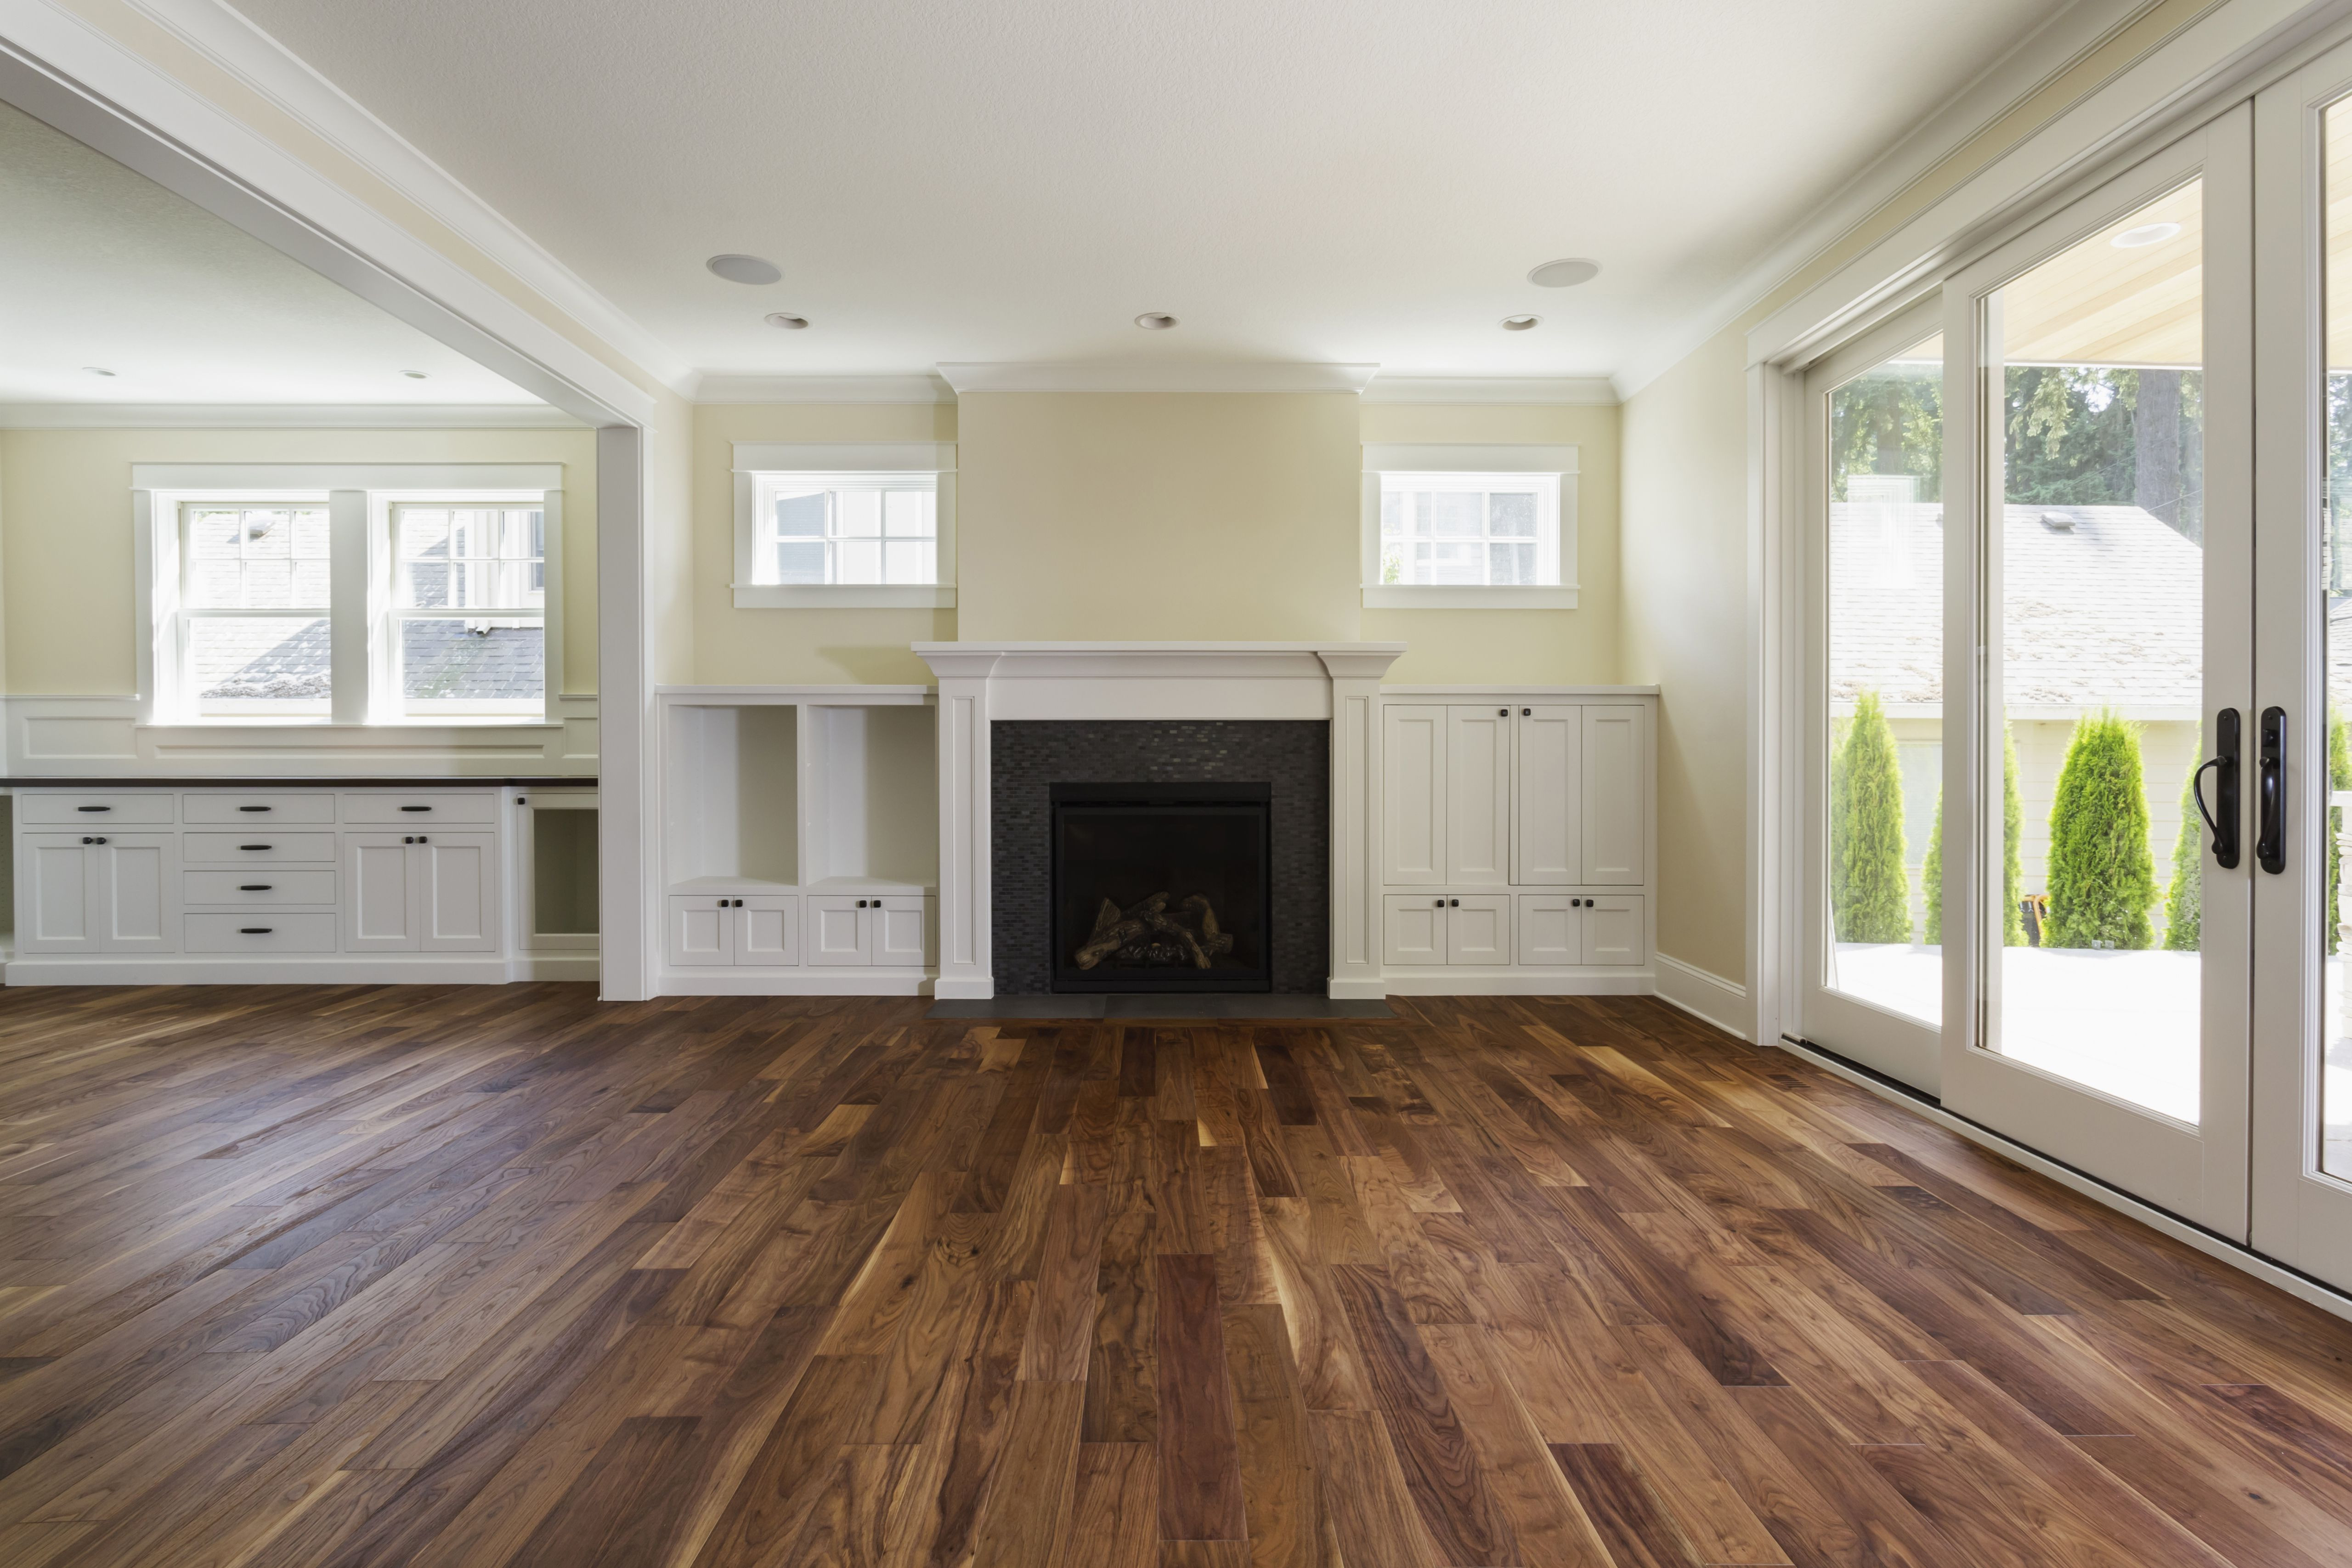 pine hardwood flooring prices of the pros and cons of prefinished hardwood flooring in fireplace and built in shelves in living room 482143011 57bef8e33df78cc16e035397